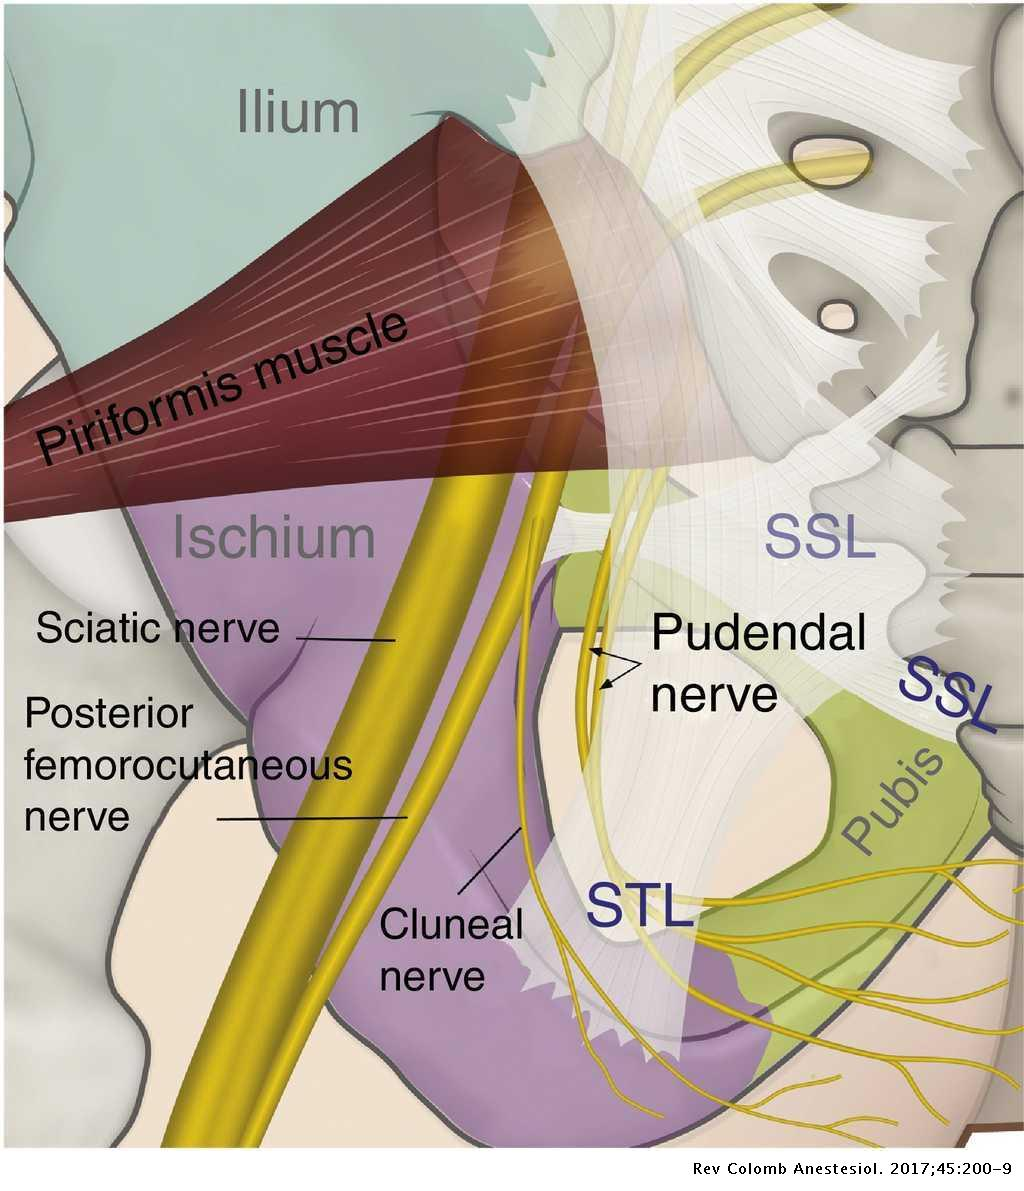 Regional anesthesia guided by ultrasound in the pudendal